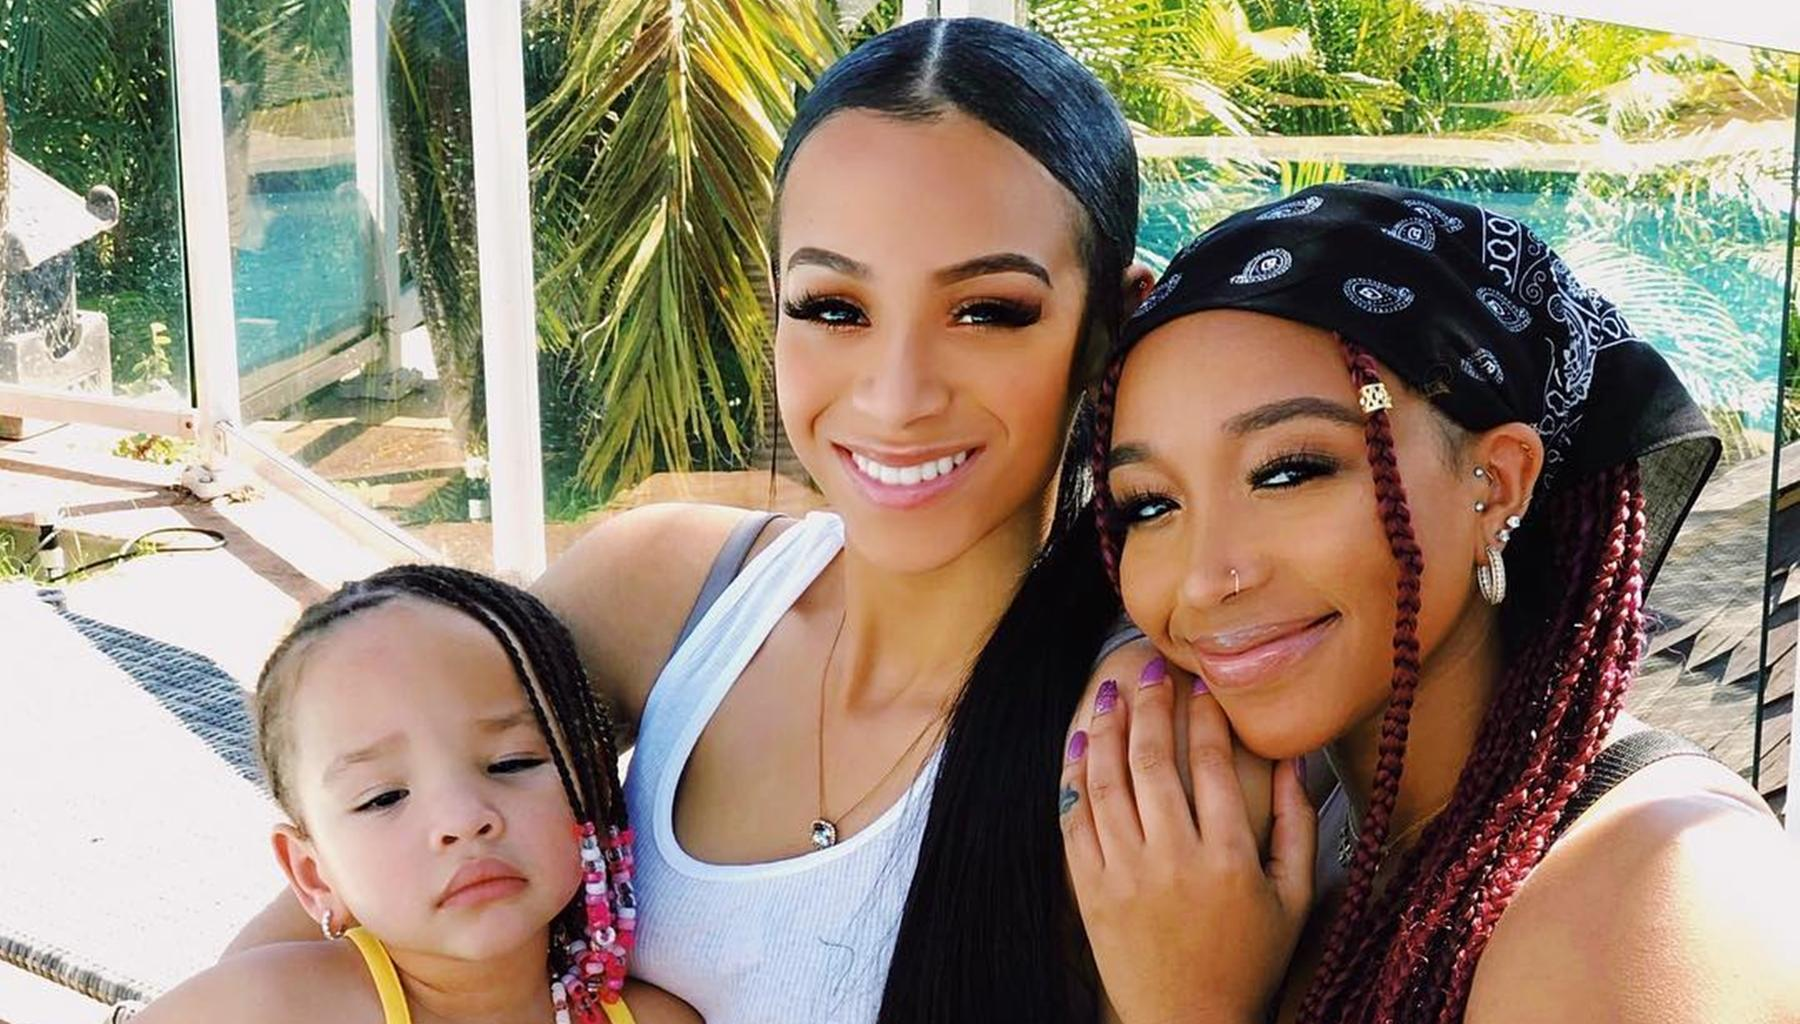 T.I. Shares A Heartfelt Message For His Three Daughters